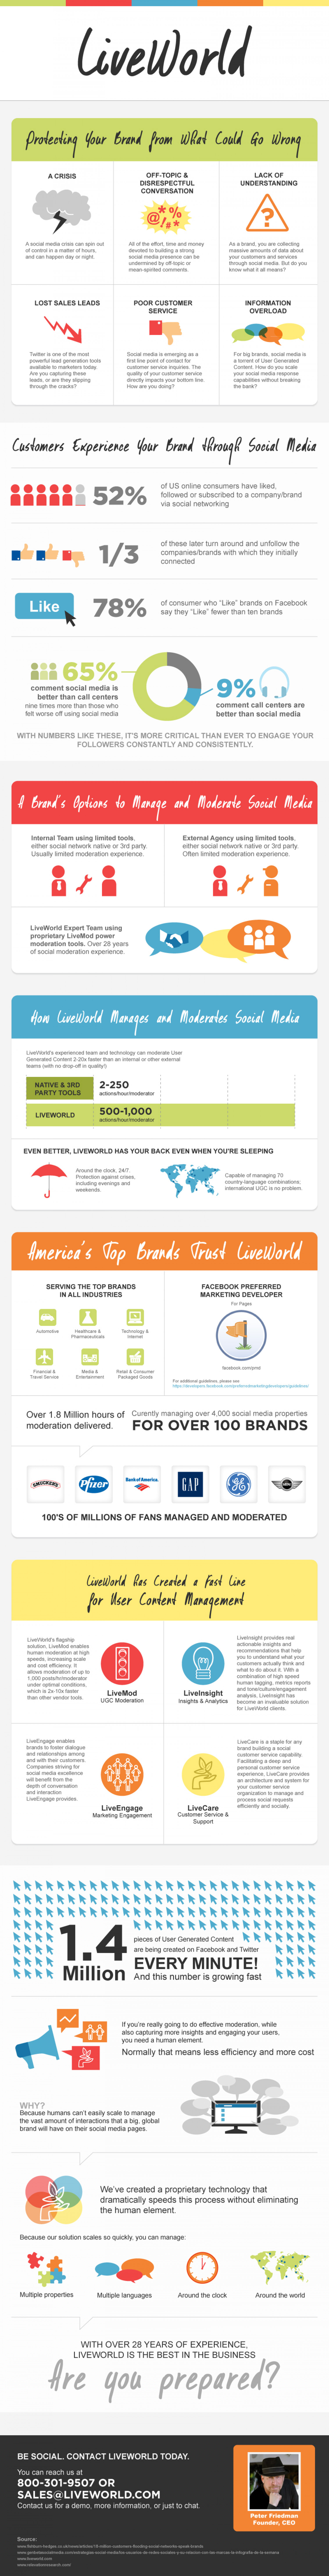 Protecting Your Brand from What Could Go Wrong Infographic